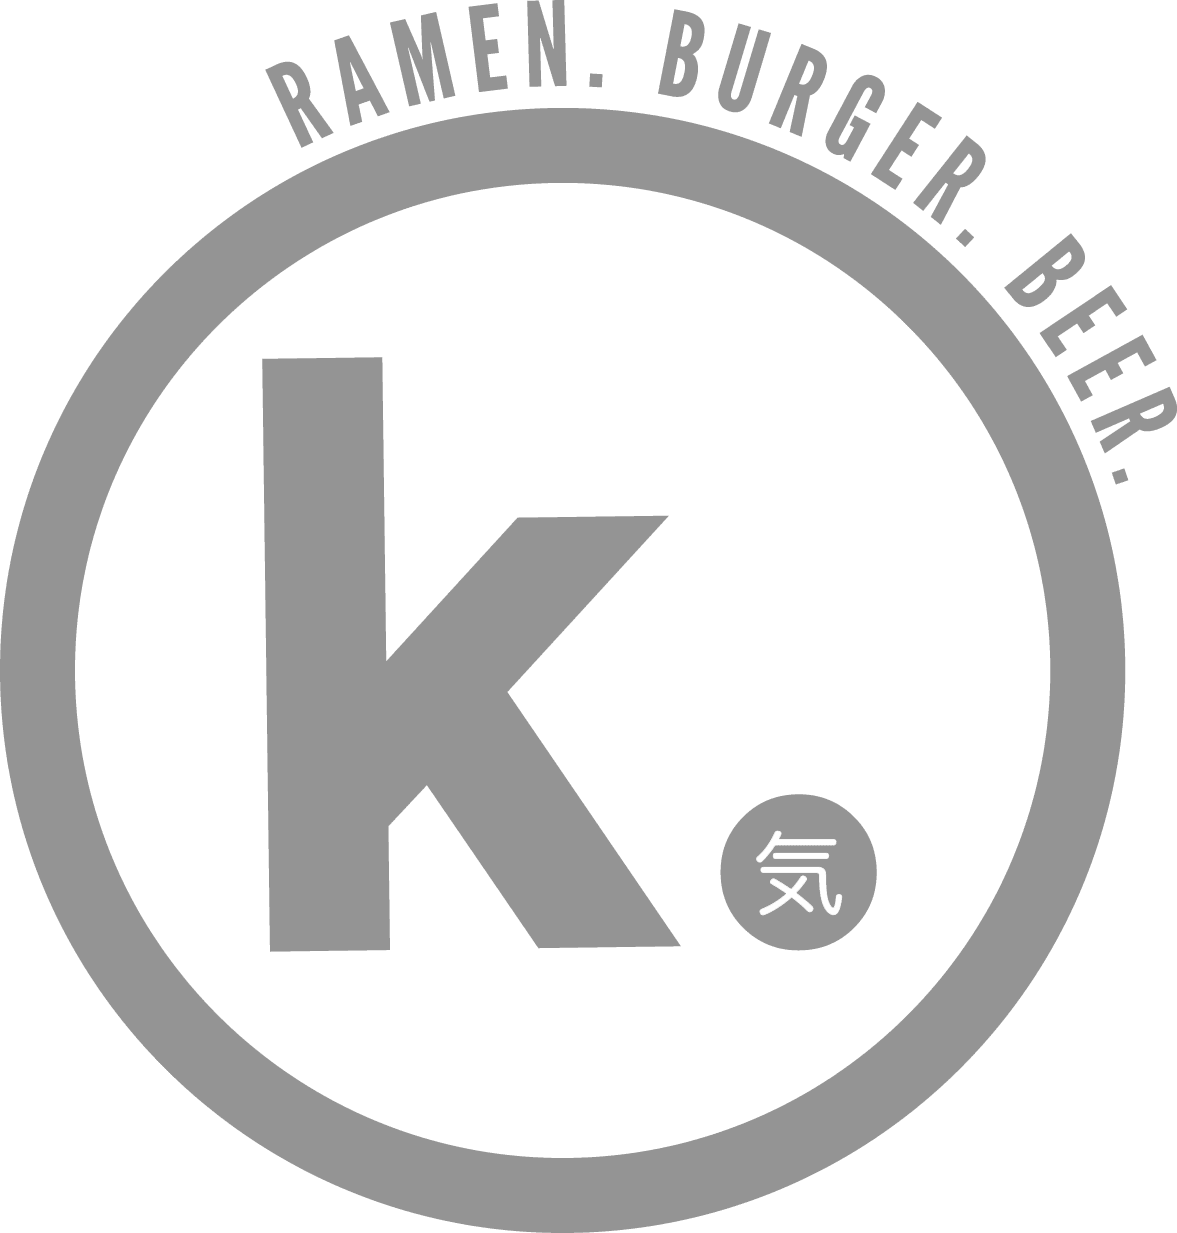 K Ramen. Burger. Beer. South Beach